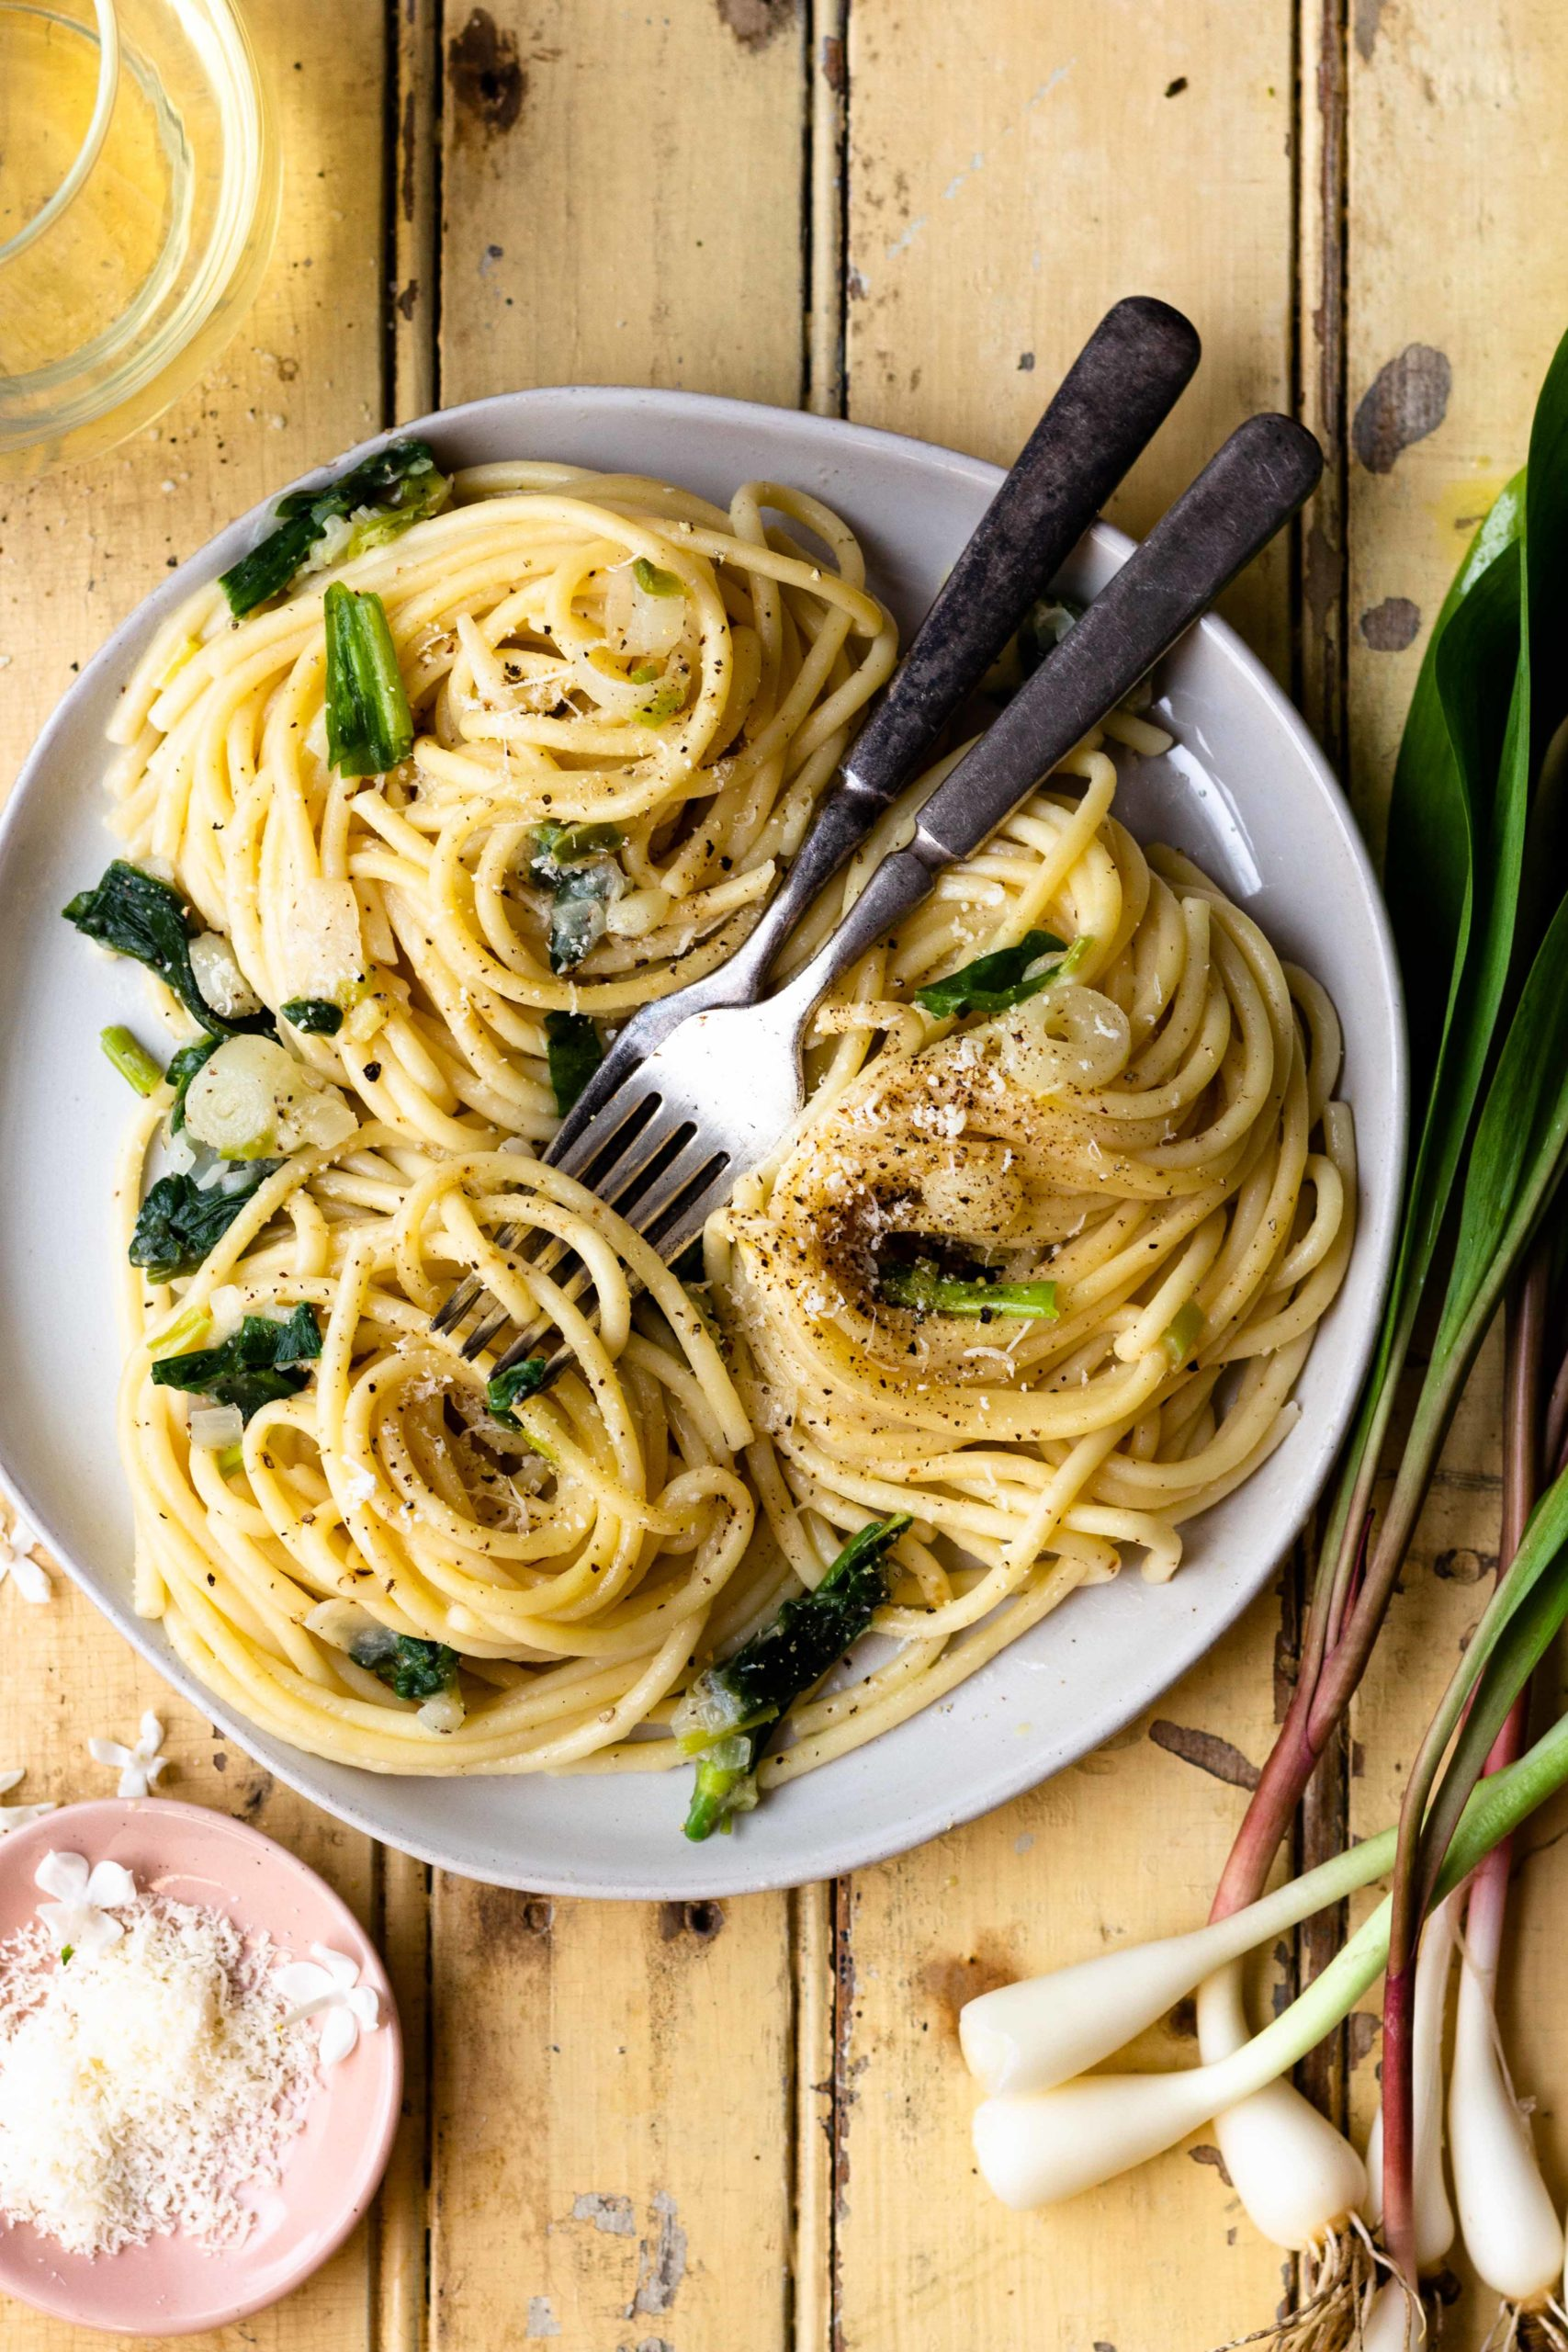 Ramp pasta that's light, flavorful and perfect for Spring. This simple pasta is made with lots of butter, freshly grated parmesan cheese and fresh wild onions for incredible flavor. Simple Buttery Parmesan Ramp Pasta comes together in just 25 minutes and would be great as a main dish or side dish.